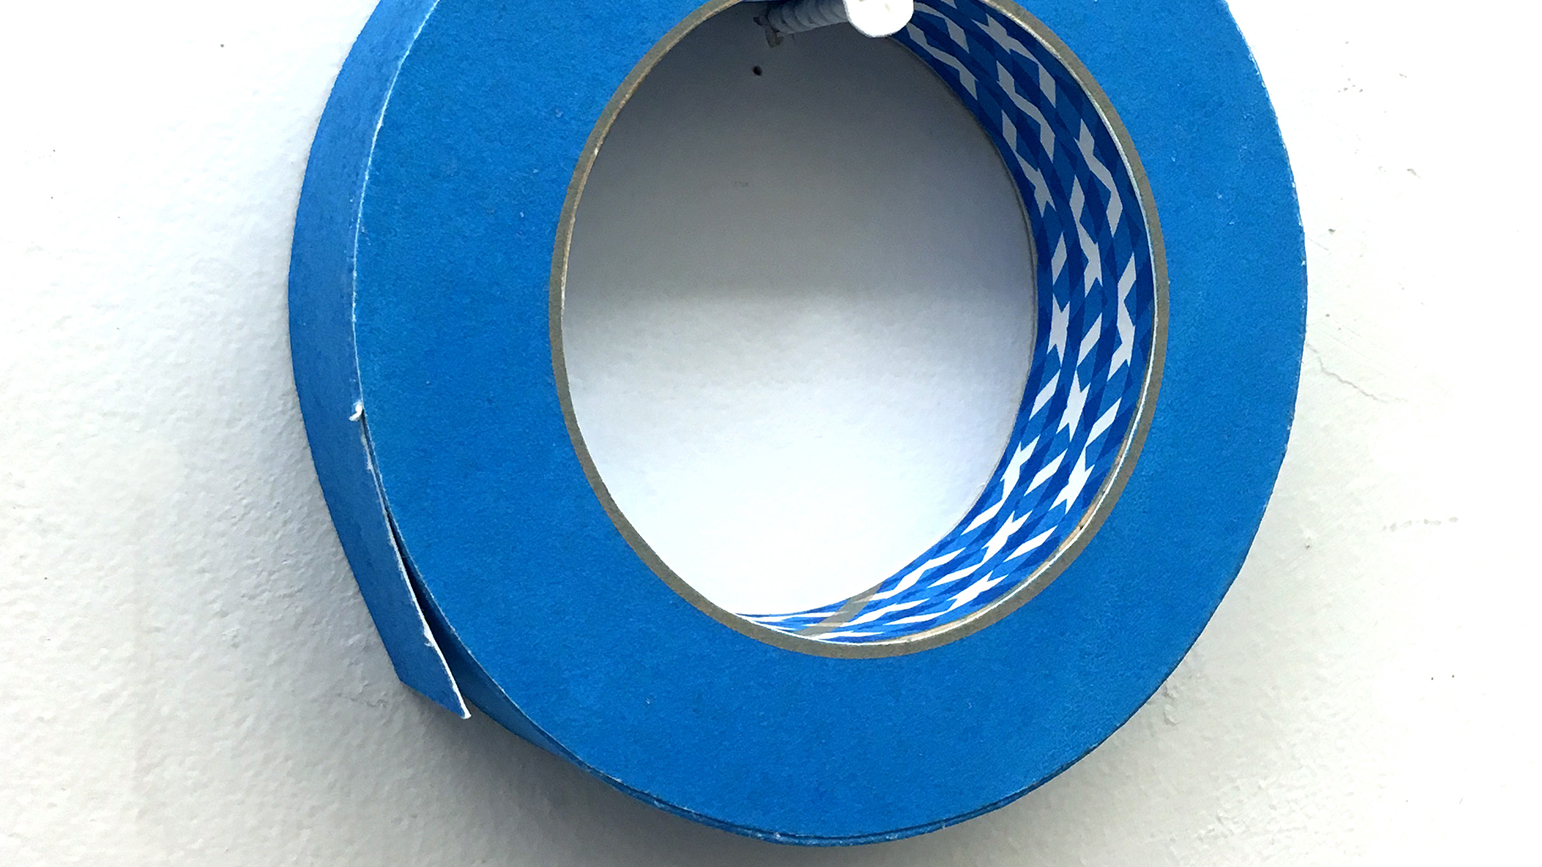 Image of a roll of blue painter's tape constructed from paper